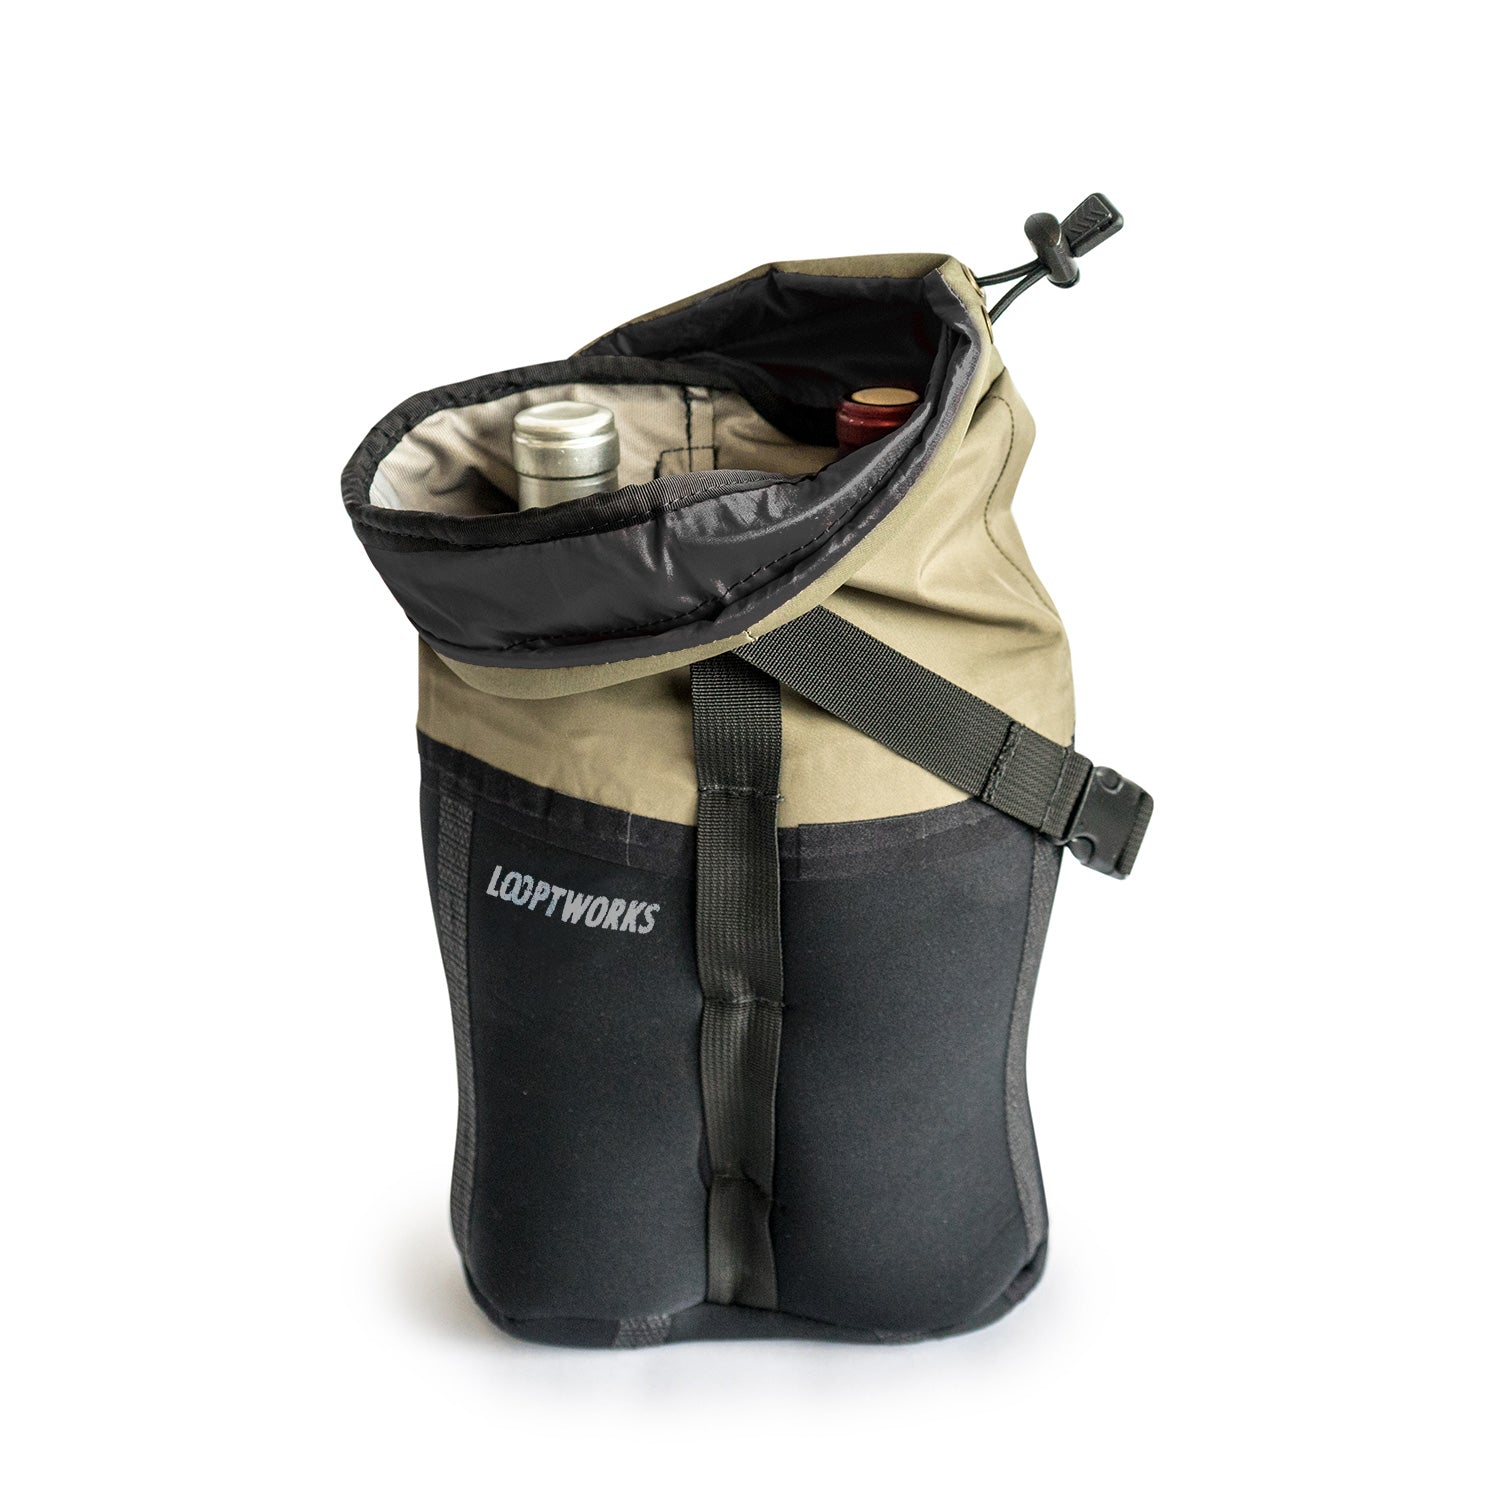 Upcycled double wine bottle carrier with drawstring enclosure protects and insulates